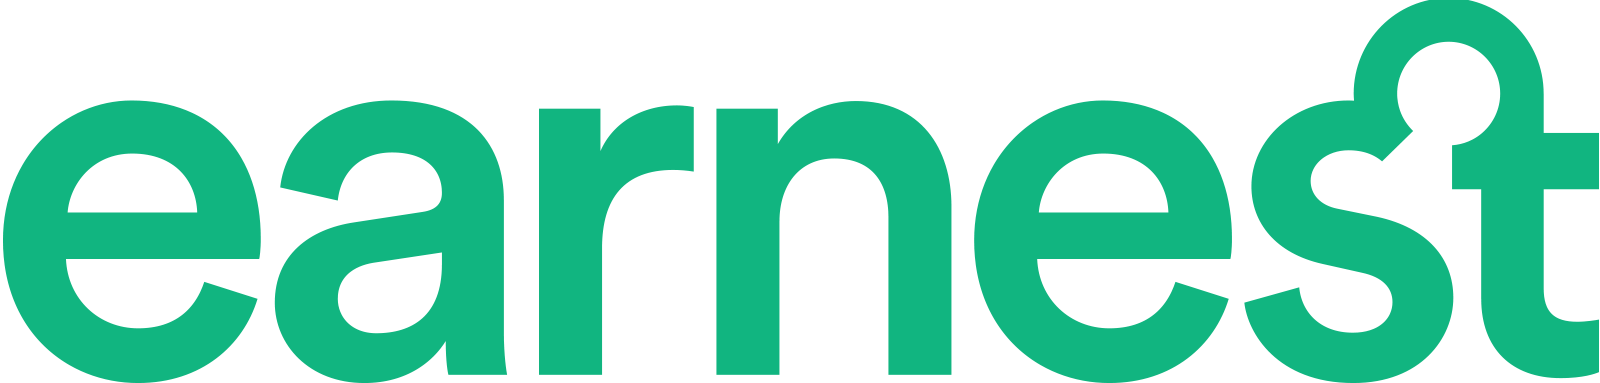 Cornell Refinance Student Loans with Earnest for Cornell University Students in Ithaca, NY